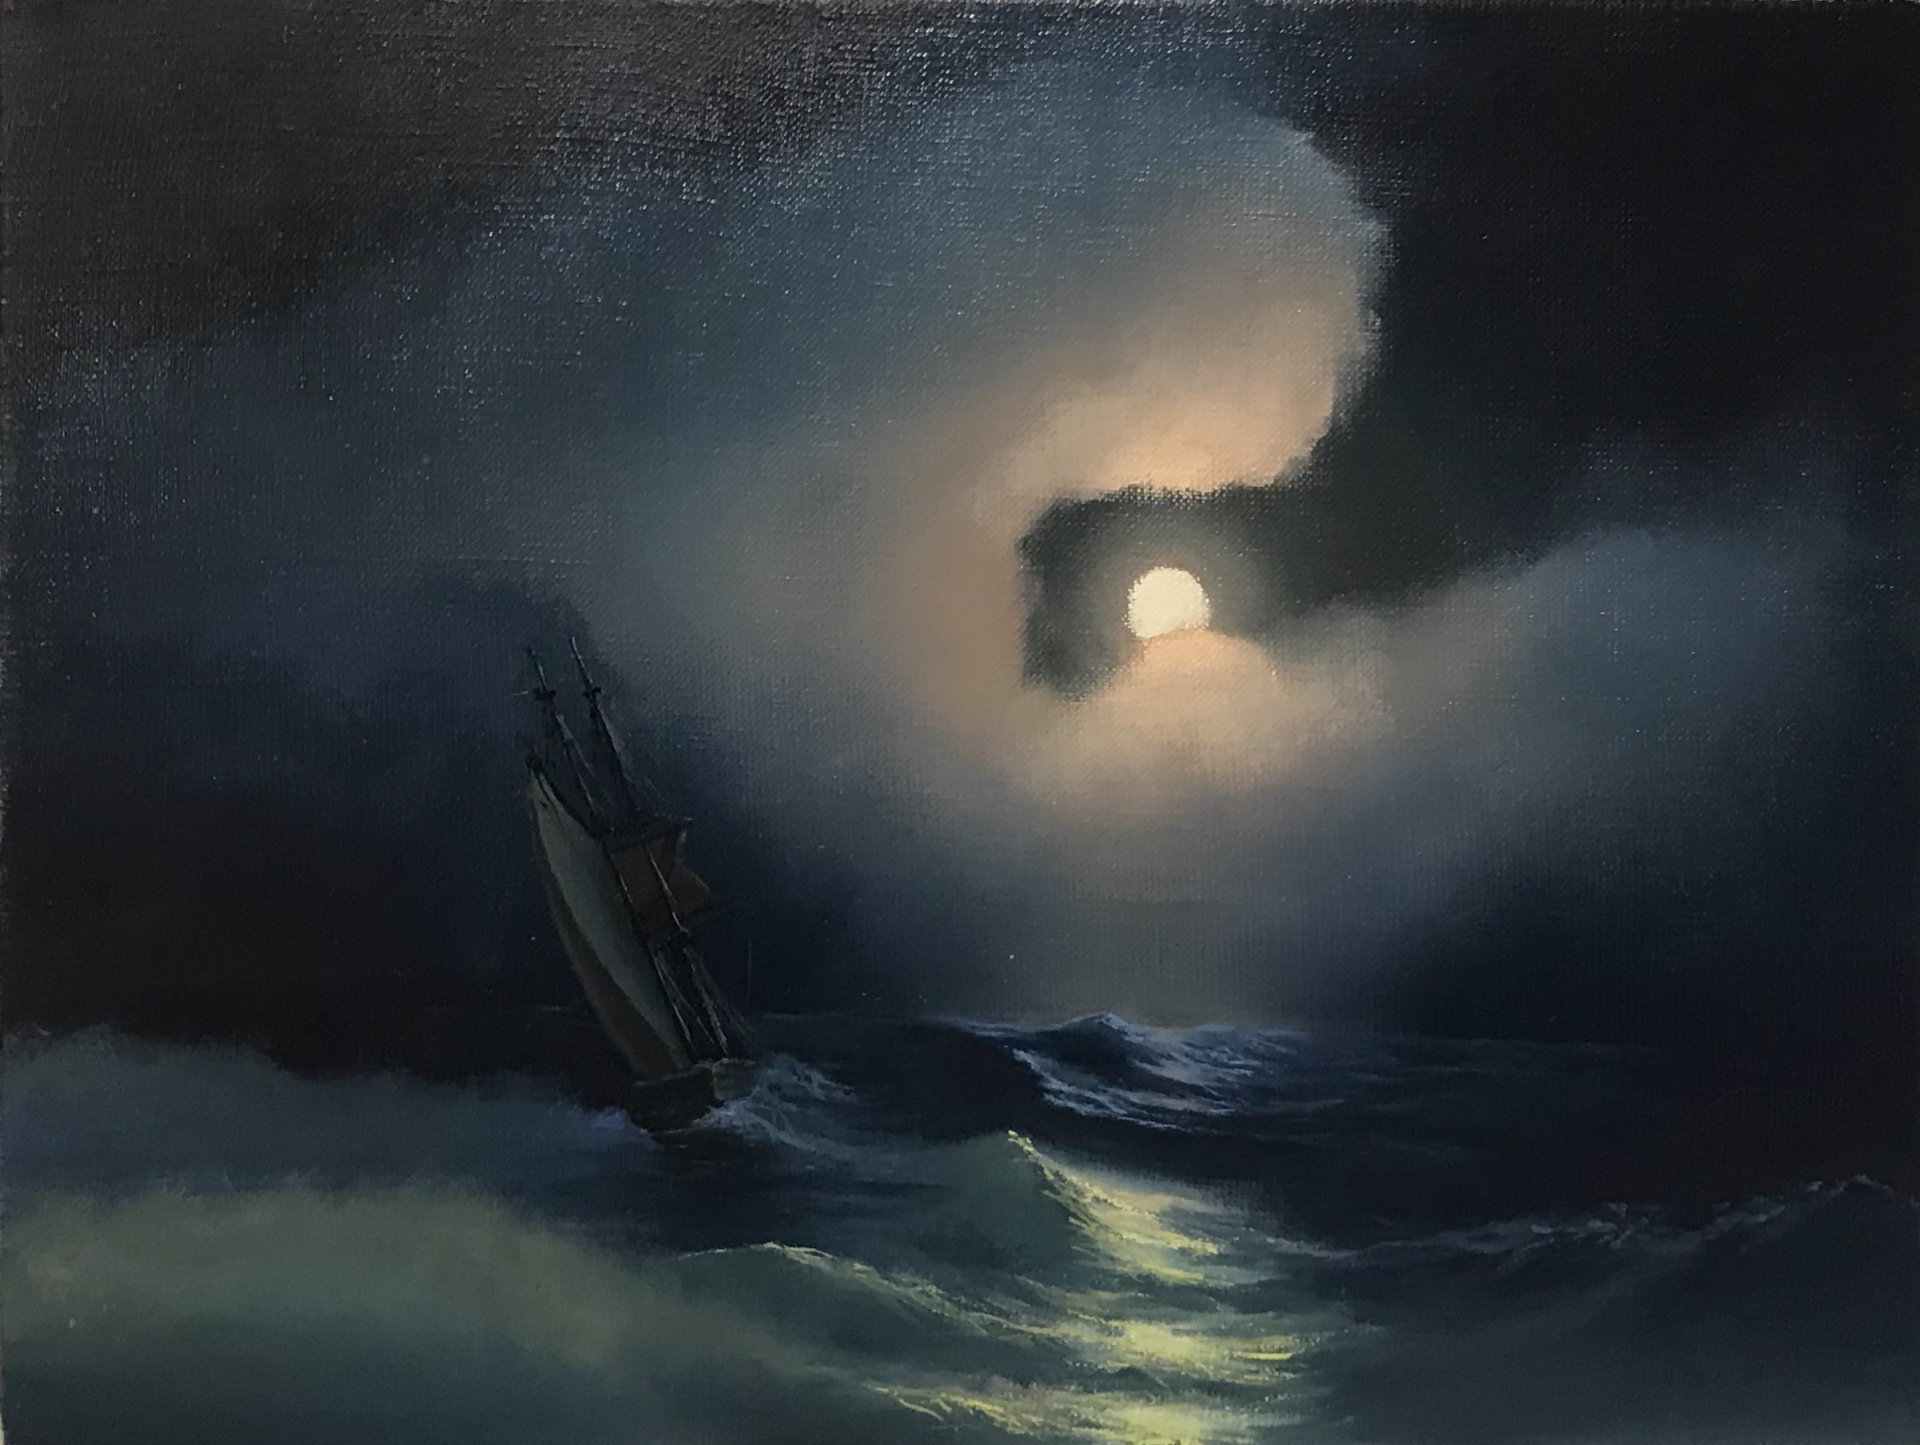 Vessel amid the storm